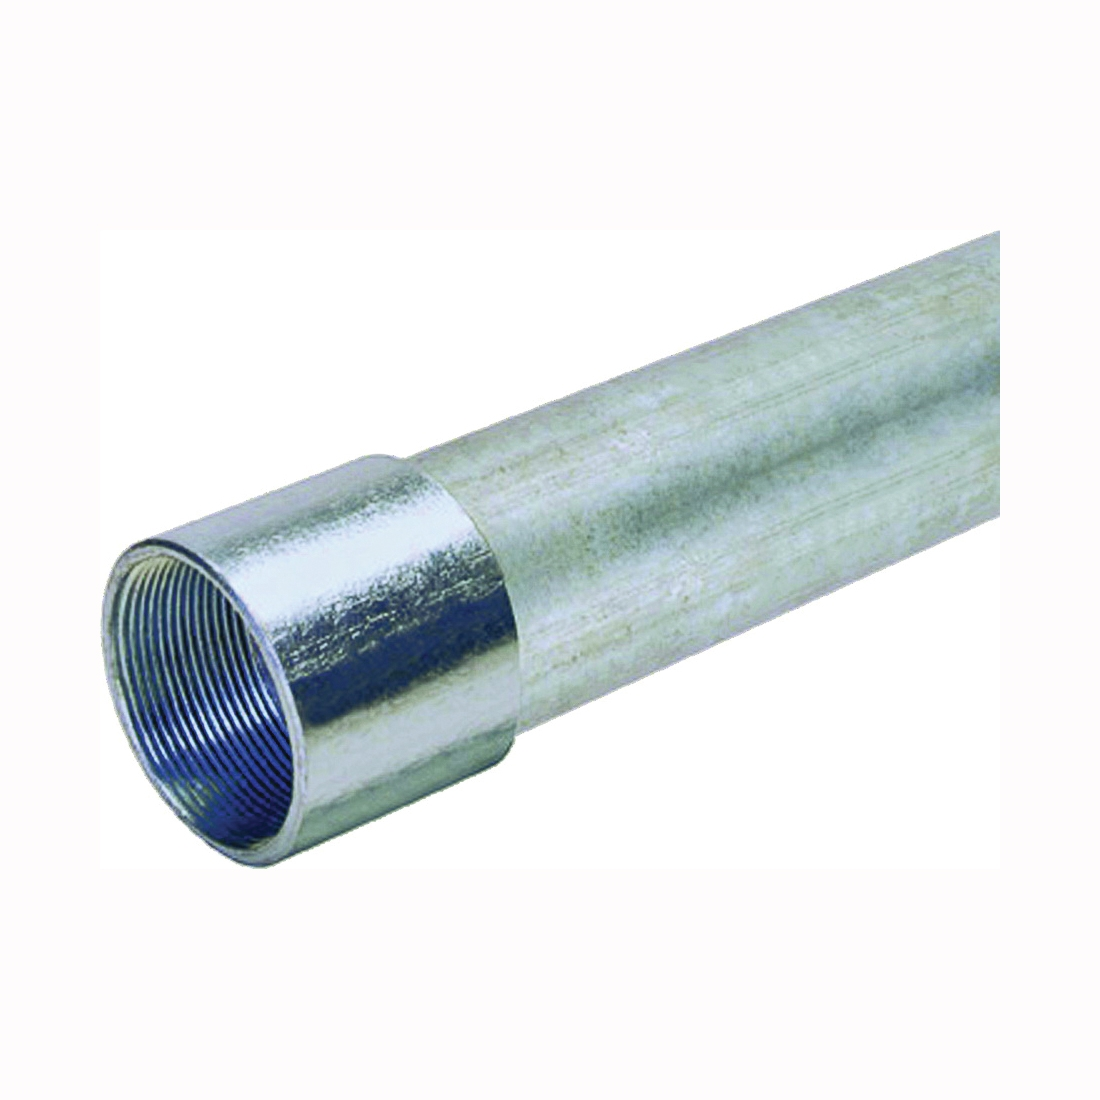 Picture of Allied Tube & Conduit 103101 Rigid Conduit, 2-3/8 in OD, 10 ft L, 2 in Trade, Galvanized Steel